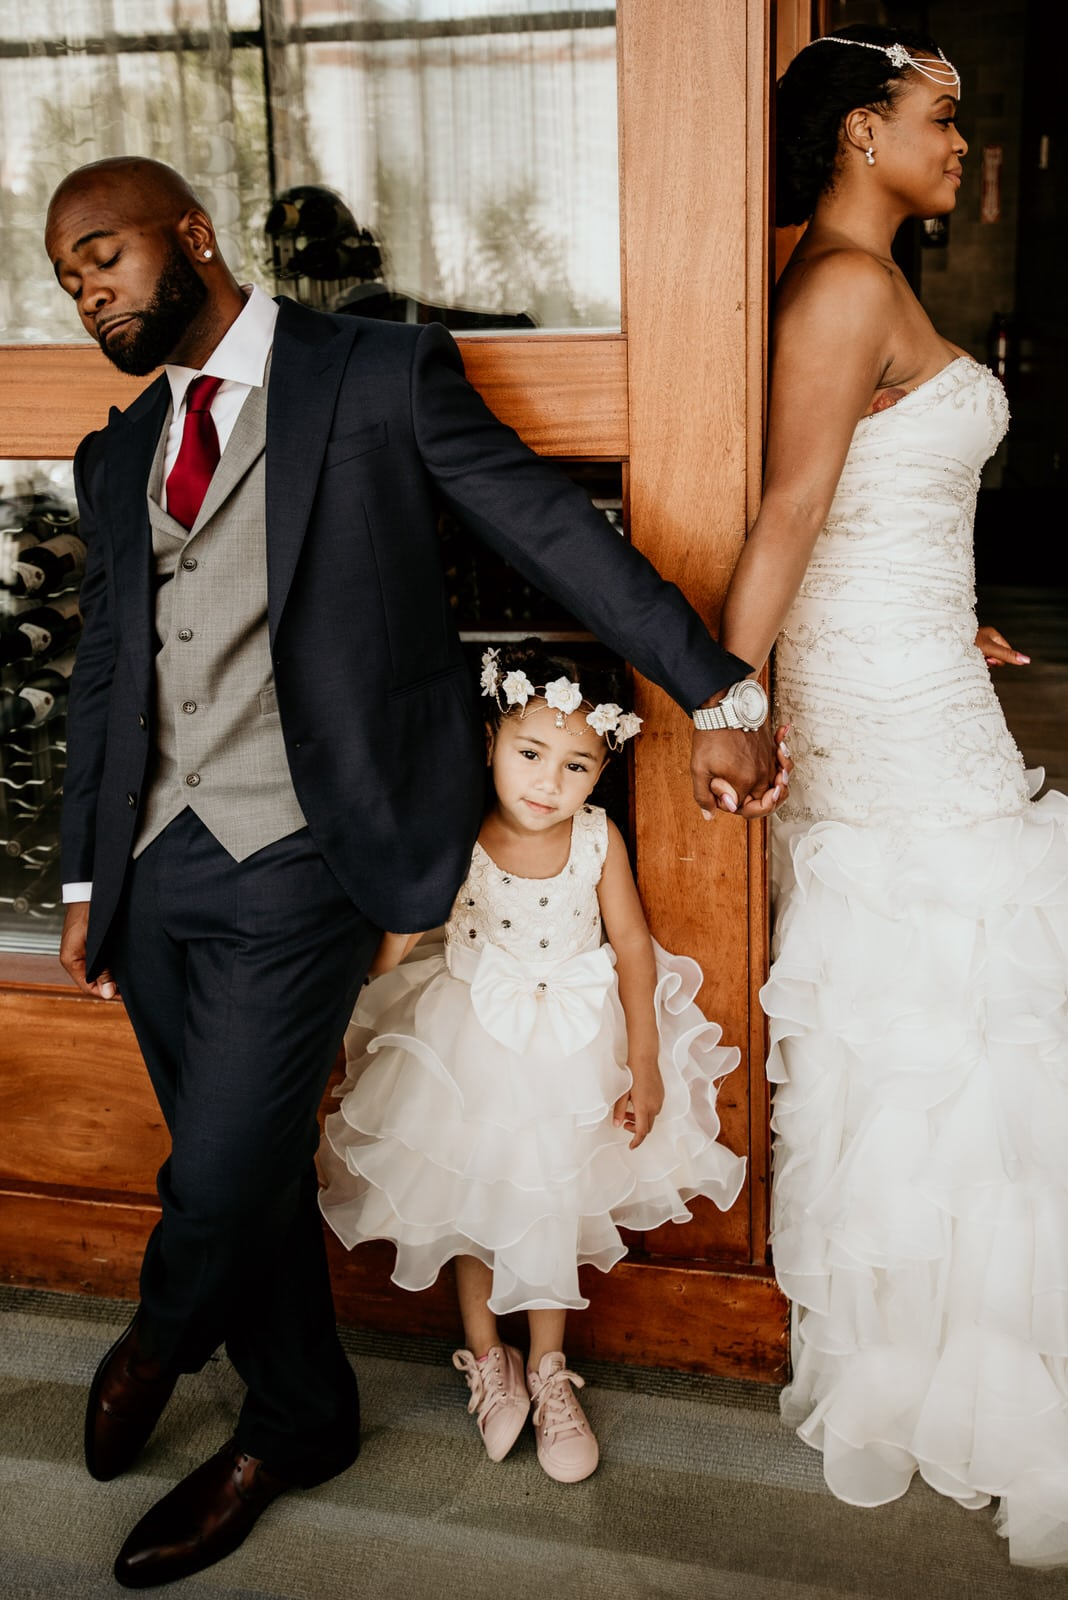 Daughter hiding behind her father before the first look